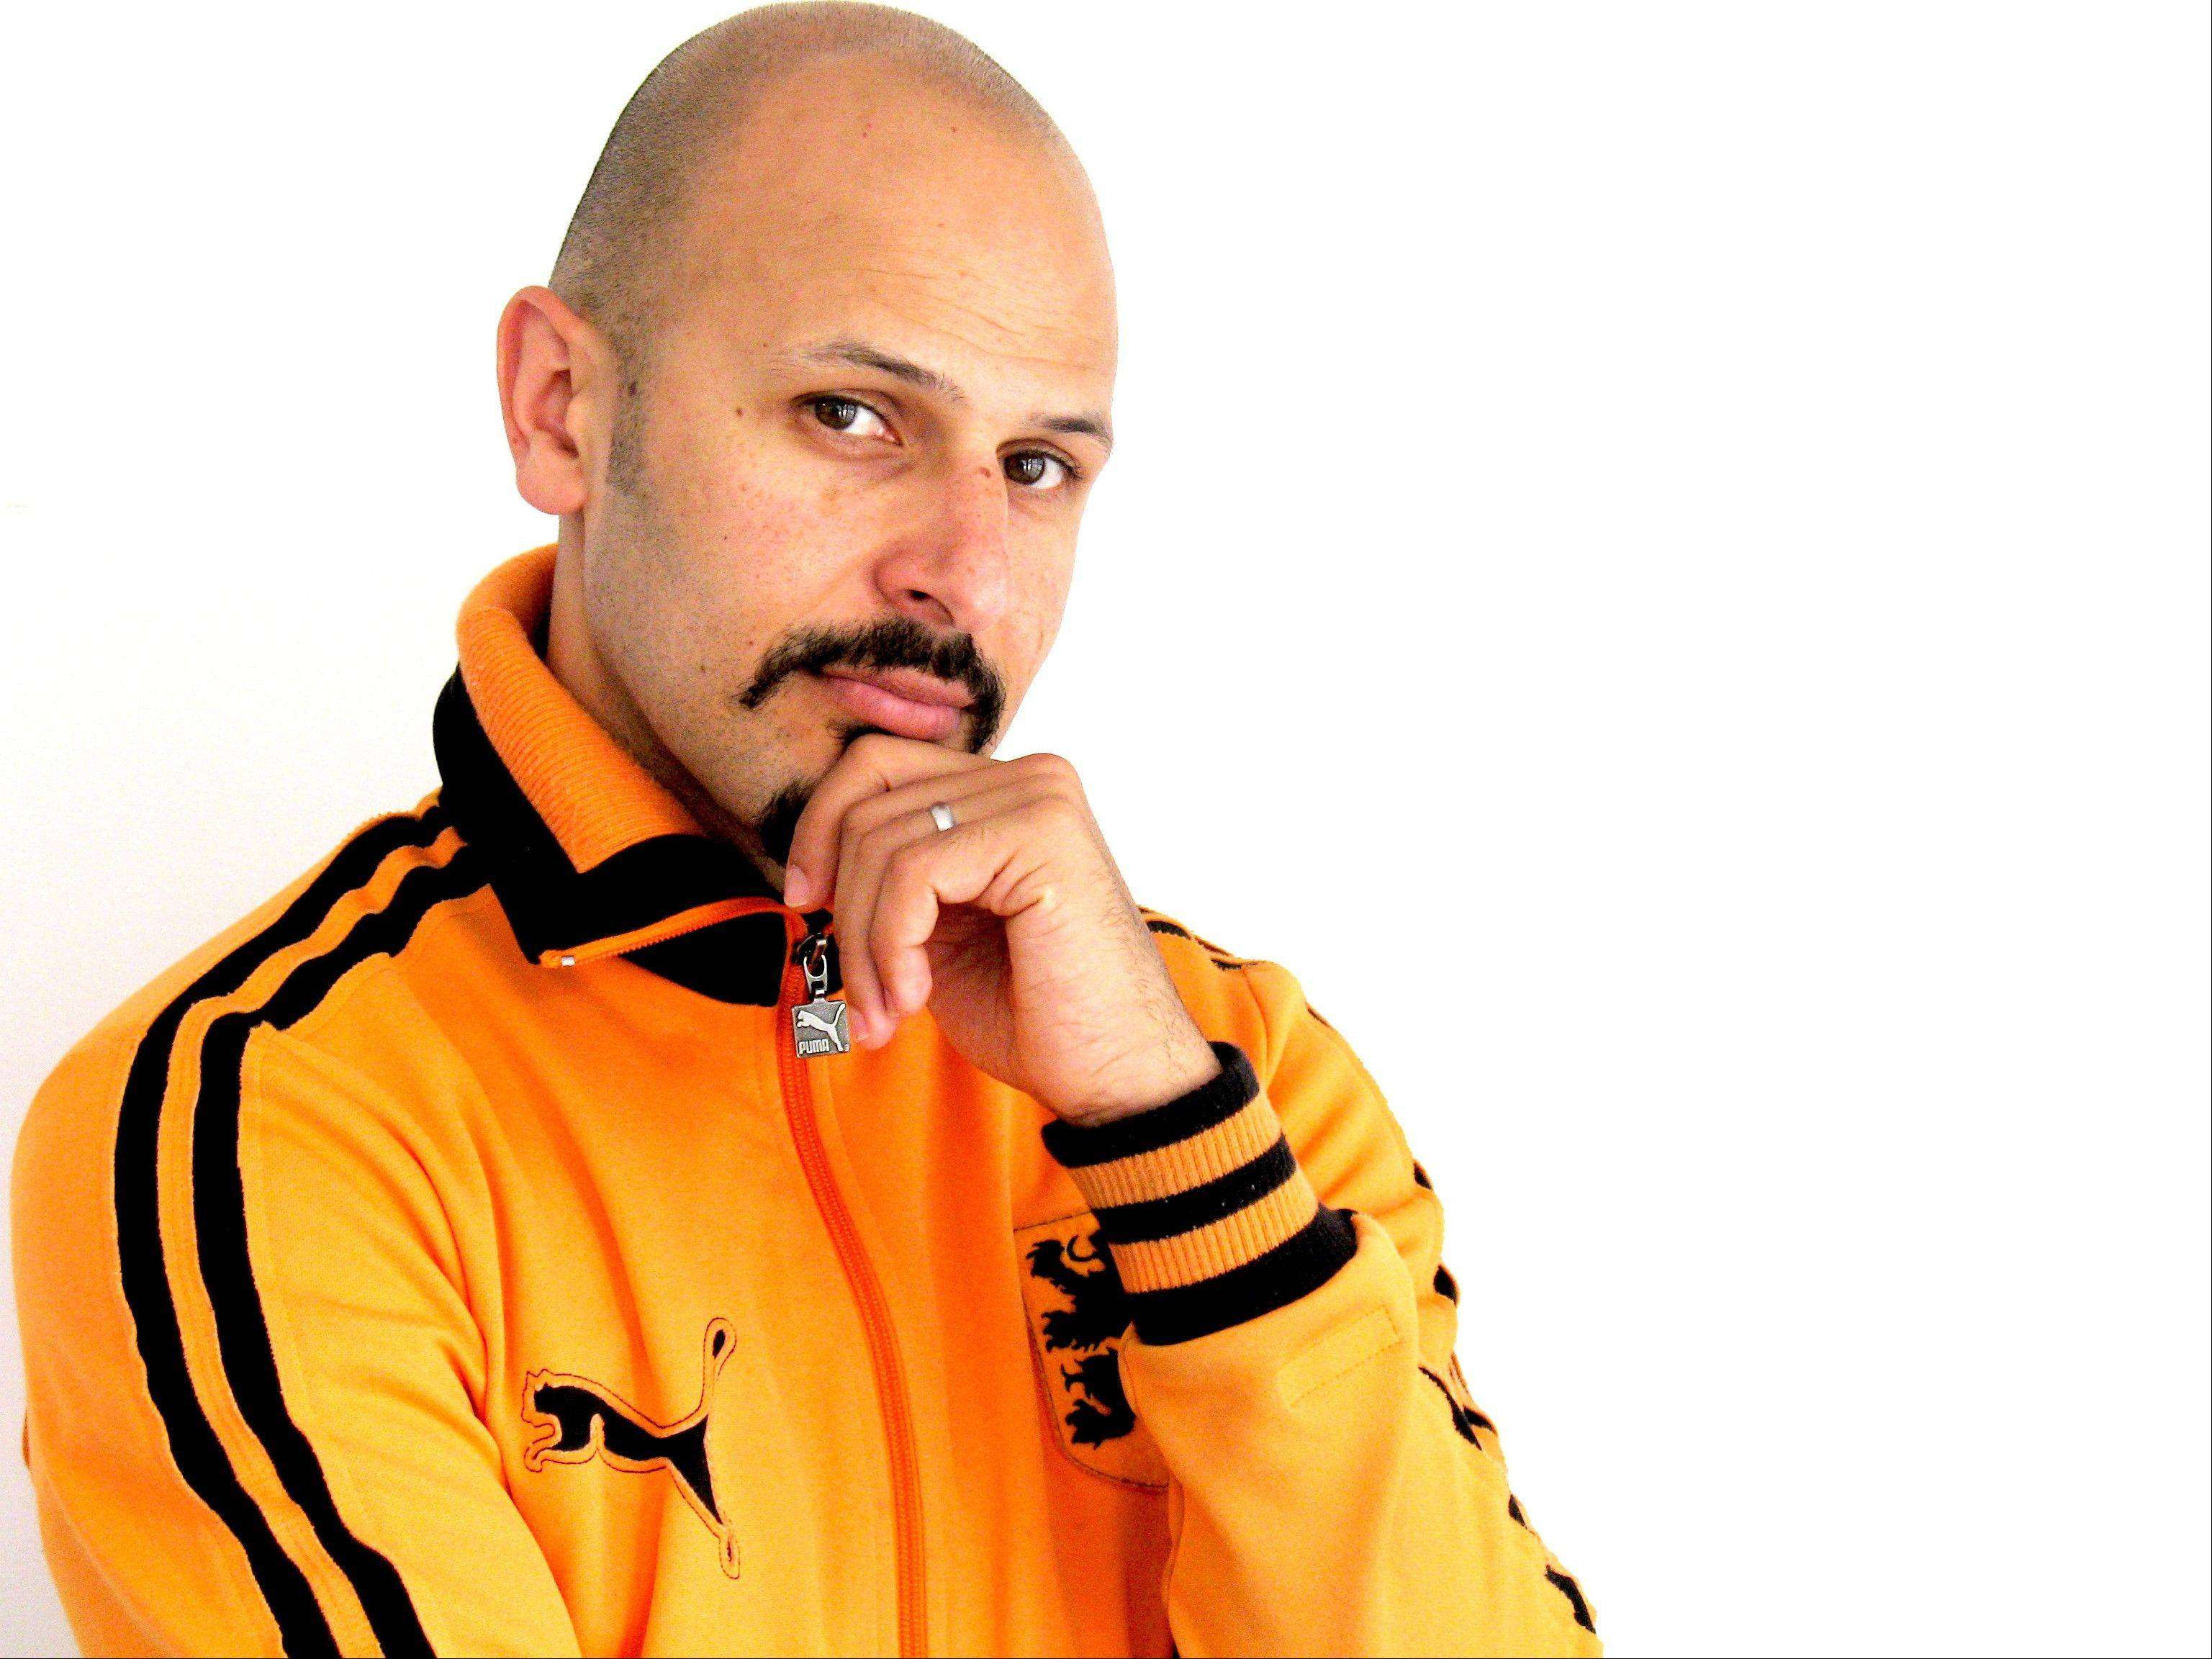 Comedian Maz Jobrani is set to play the Improv Comedy Showcase in Schaumburg.